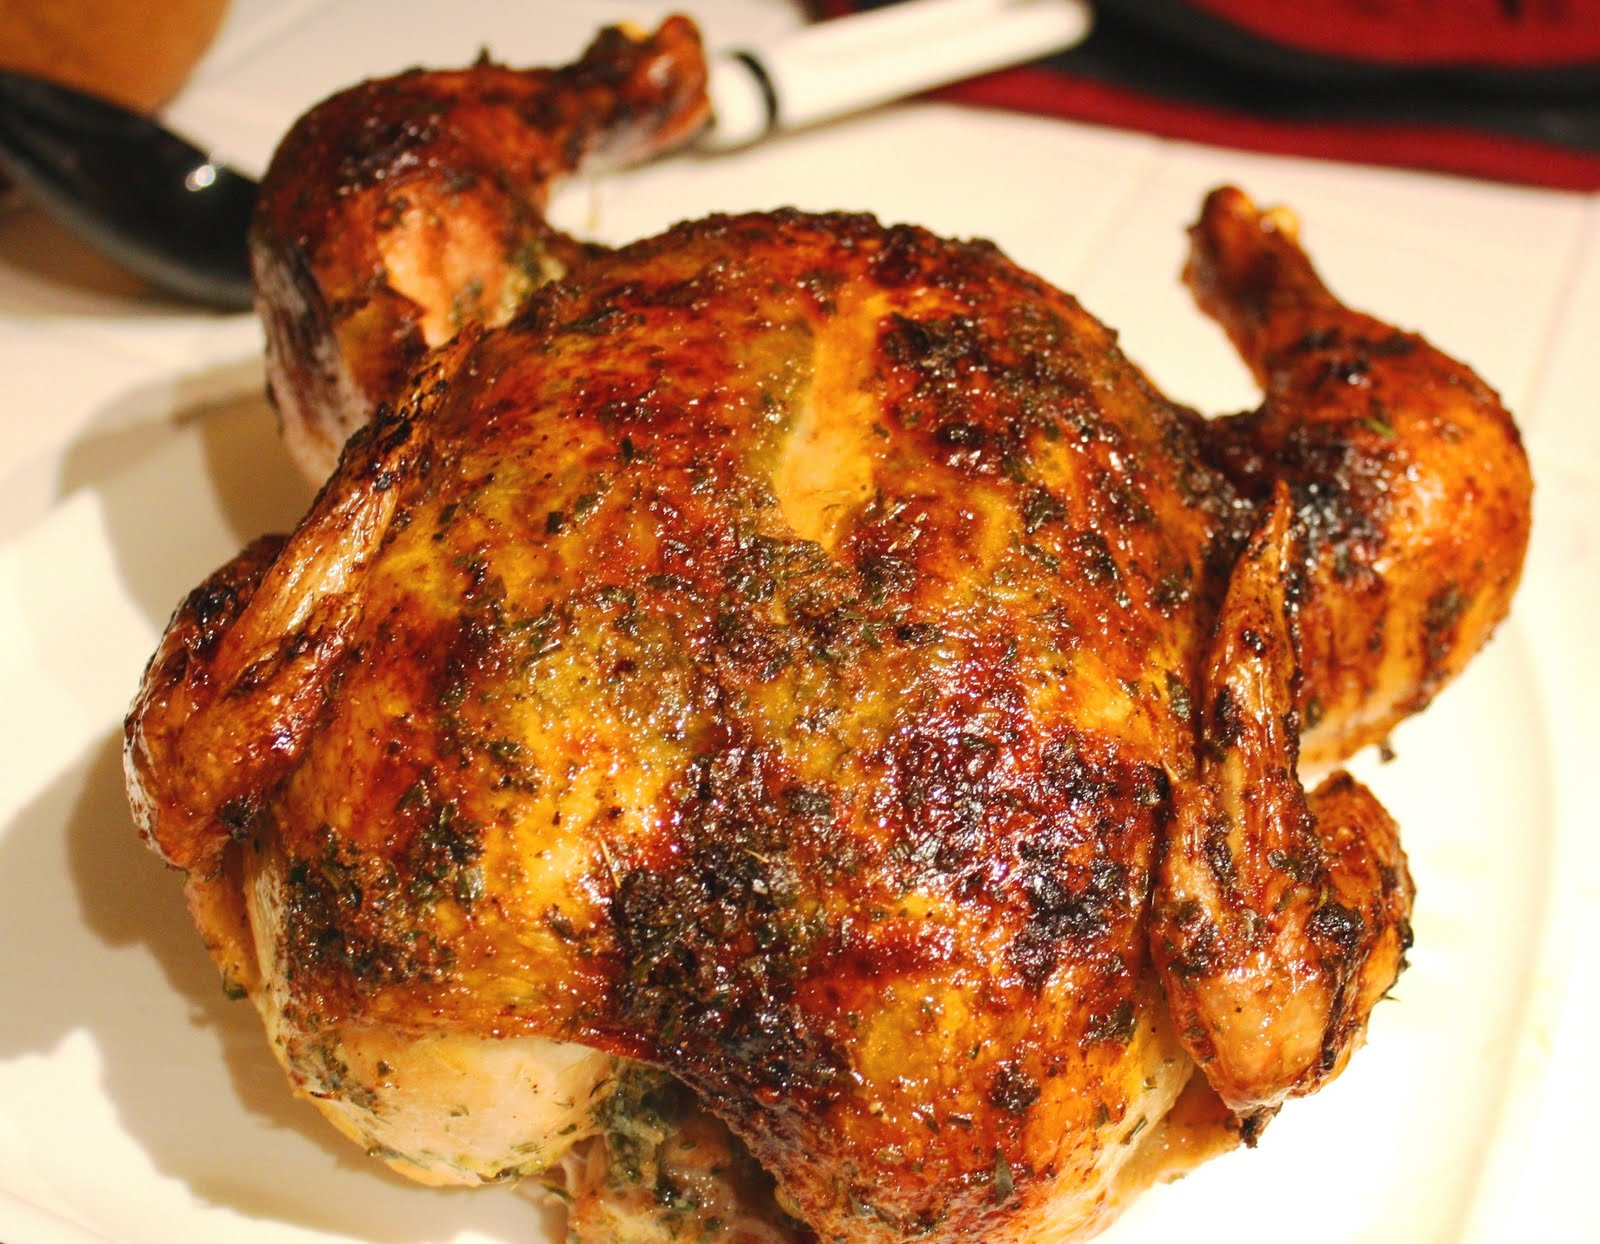 http://1.bp.blogspot.com/-P4ICcWUIulU/TkAPSLCVFfI/AAAAAAAAAG8/mYsBrge-5Vg/s1600/Honey_Roast_Chicken_Lemon_Tarragon.JPG